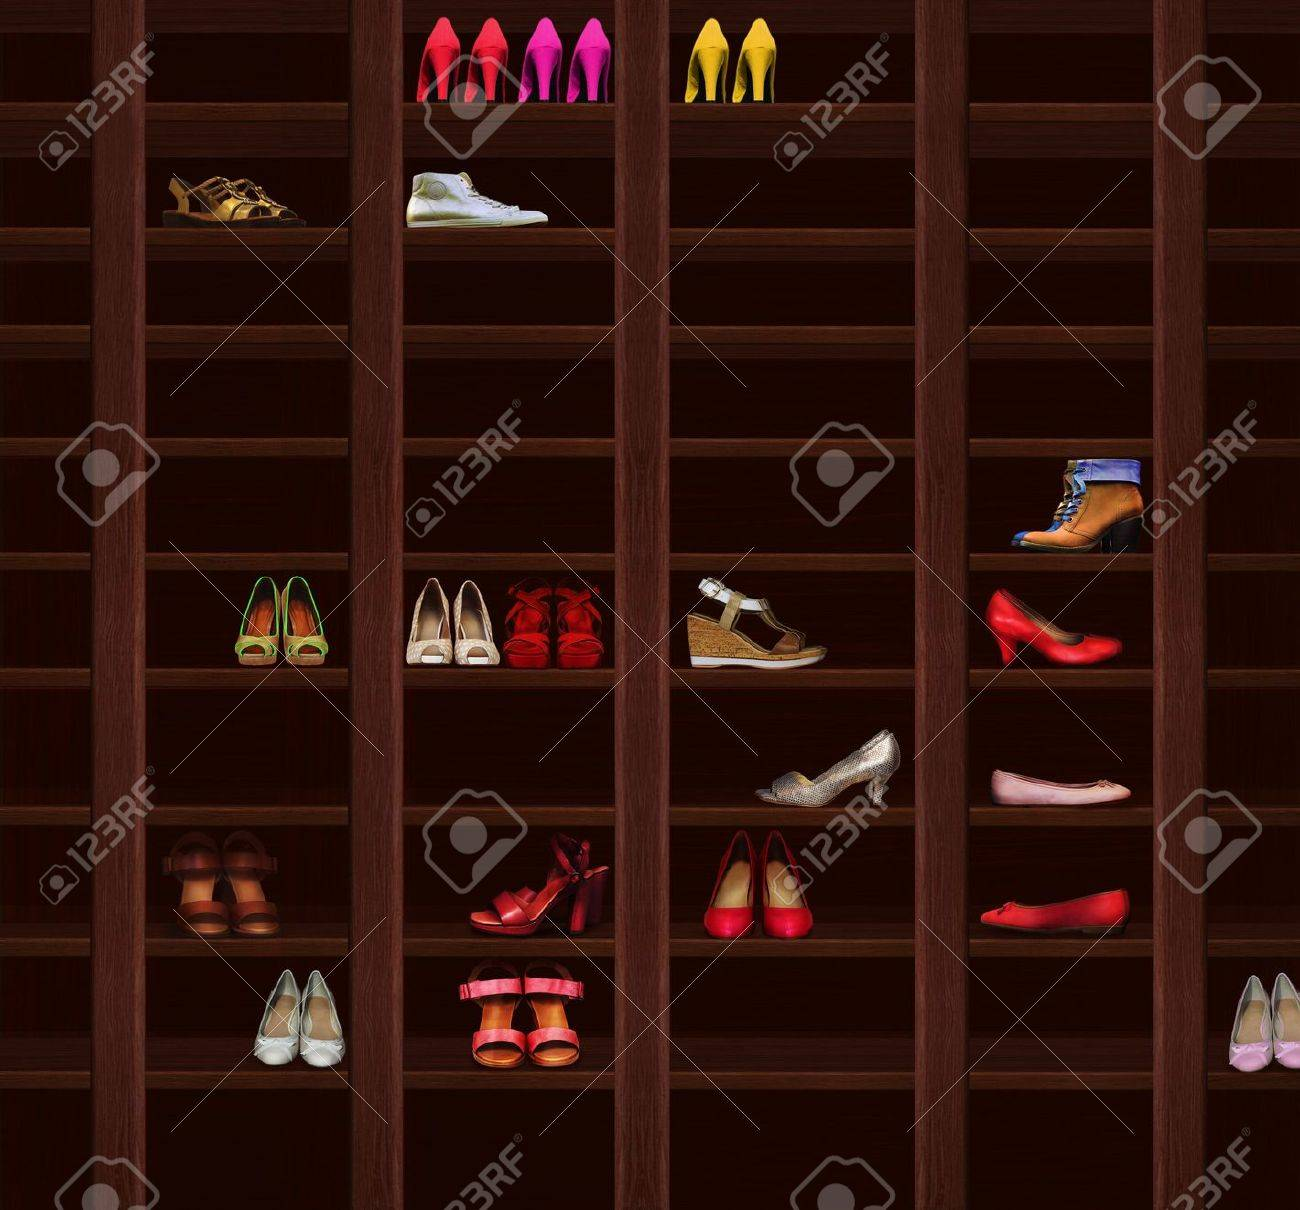 Wardrobe. Brown Wood Shelves with Women's Shoes. Fashion Stock Photo - 19758666